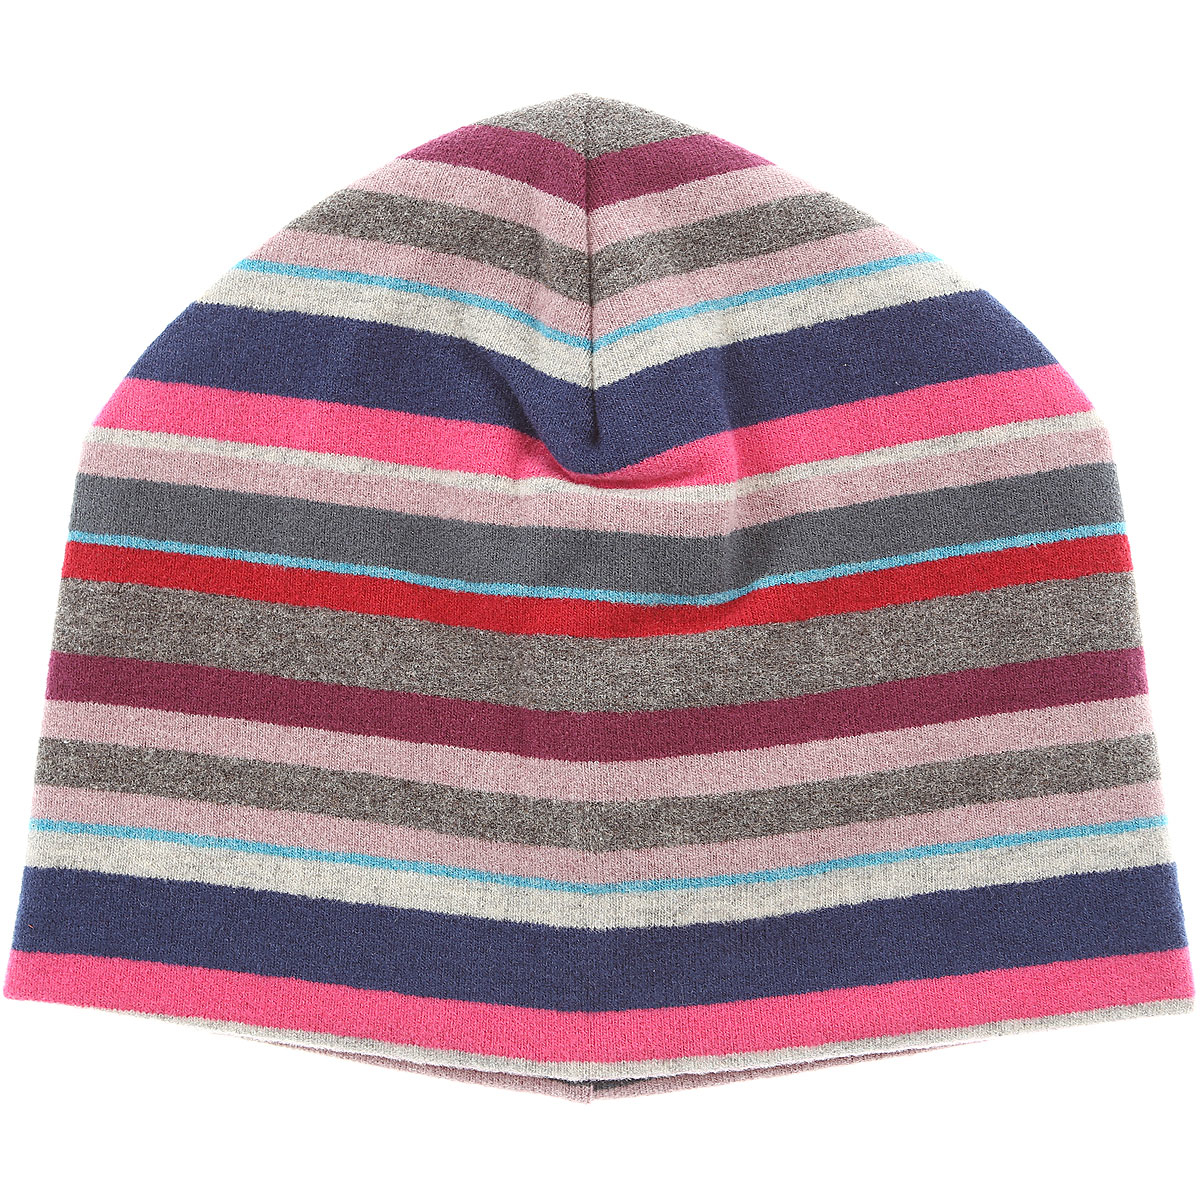 Gallo Baby Hats for Girls On Sale in Outlet Grey DK - GOOFASH - Womens HATS